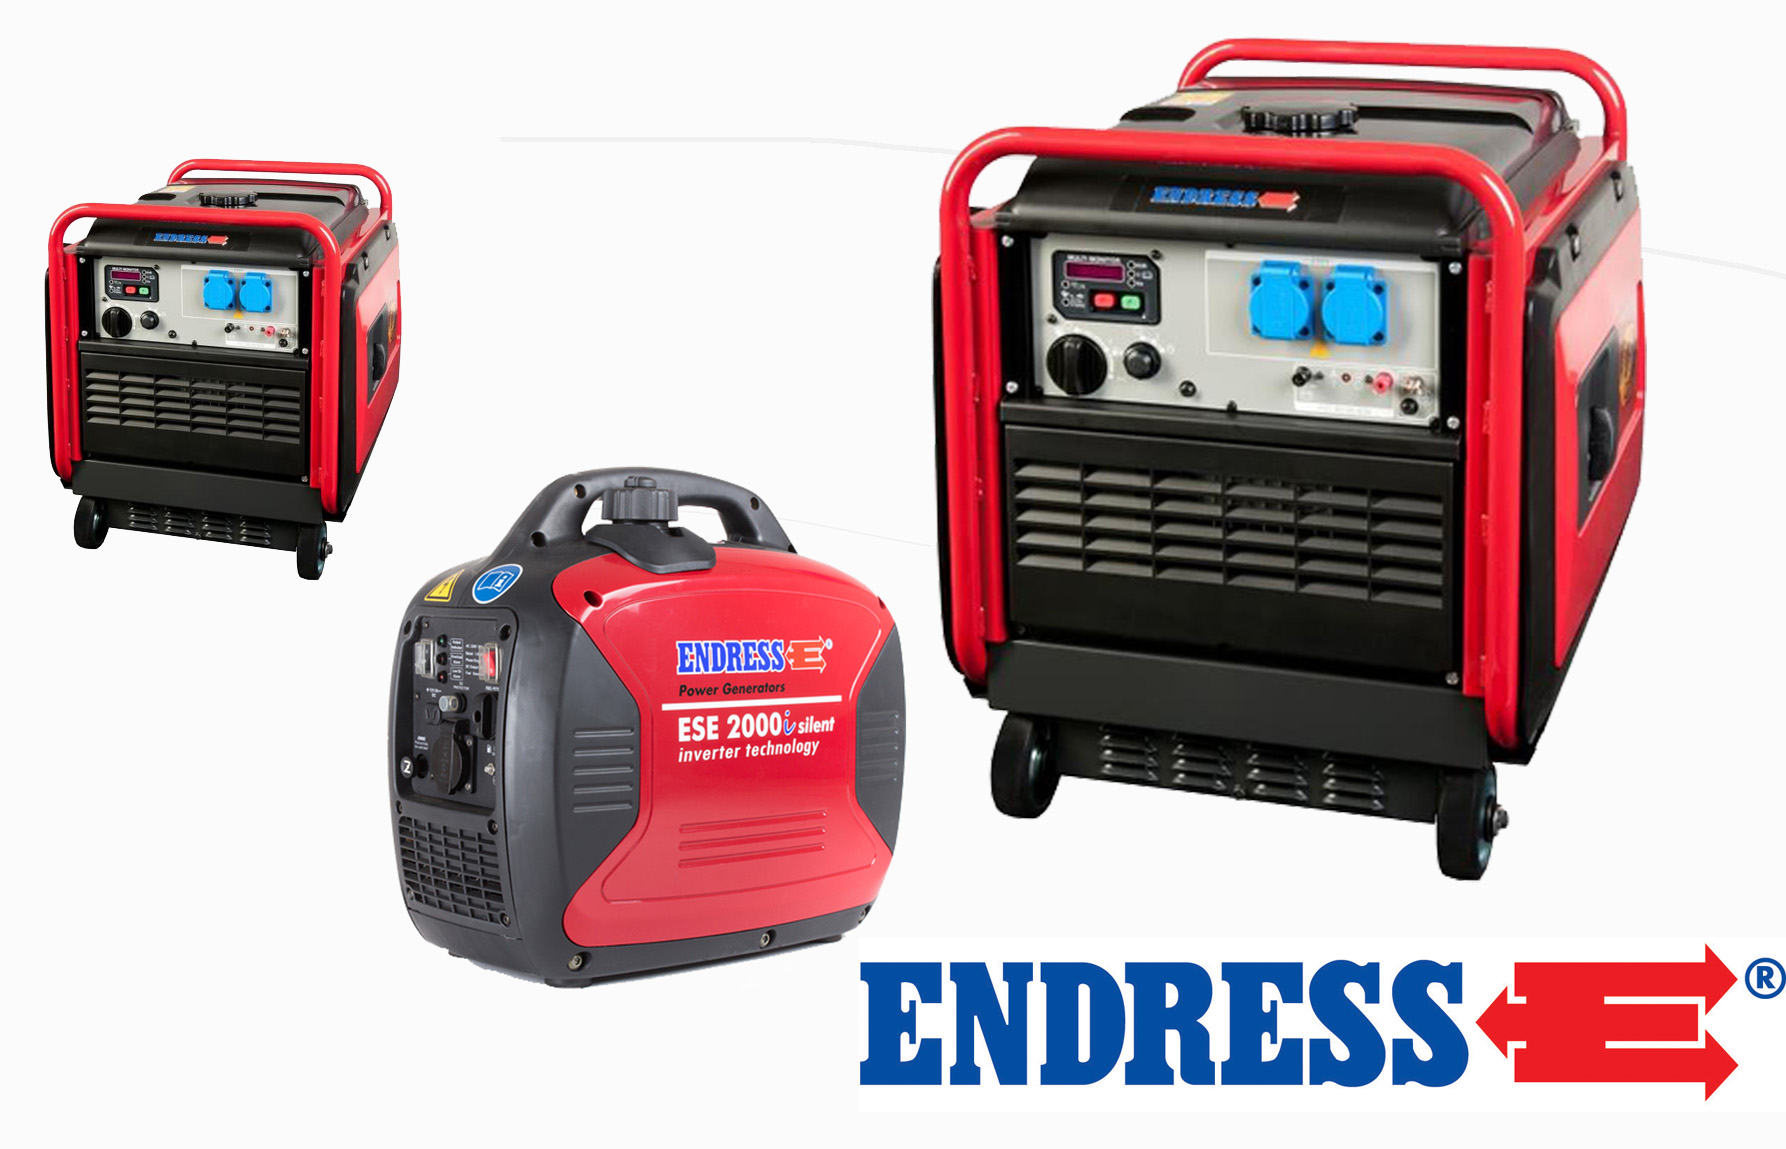 Endress Inverter Generatoren ESE Serie